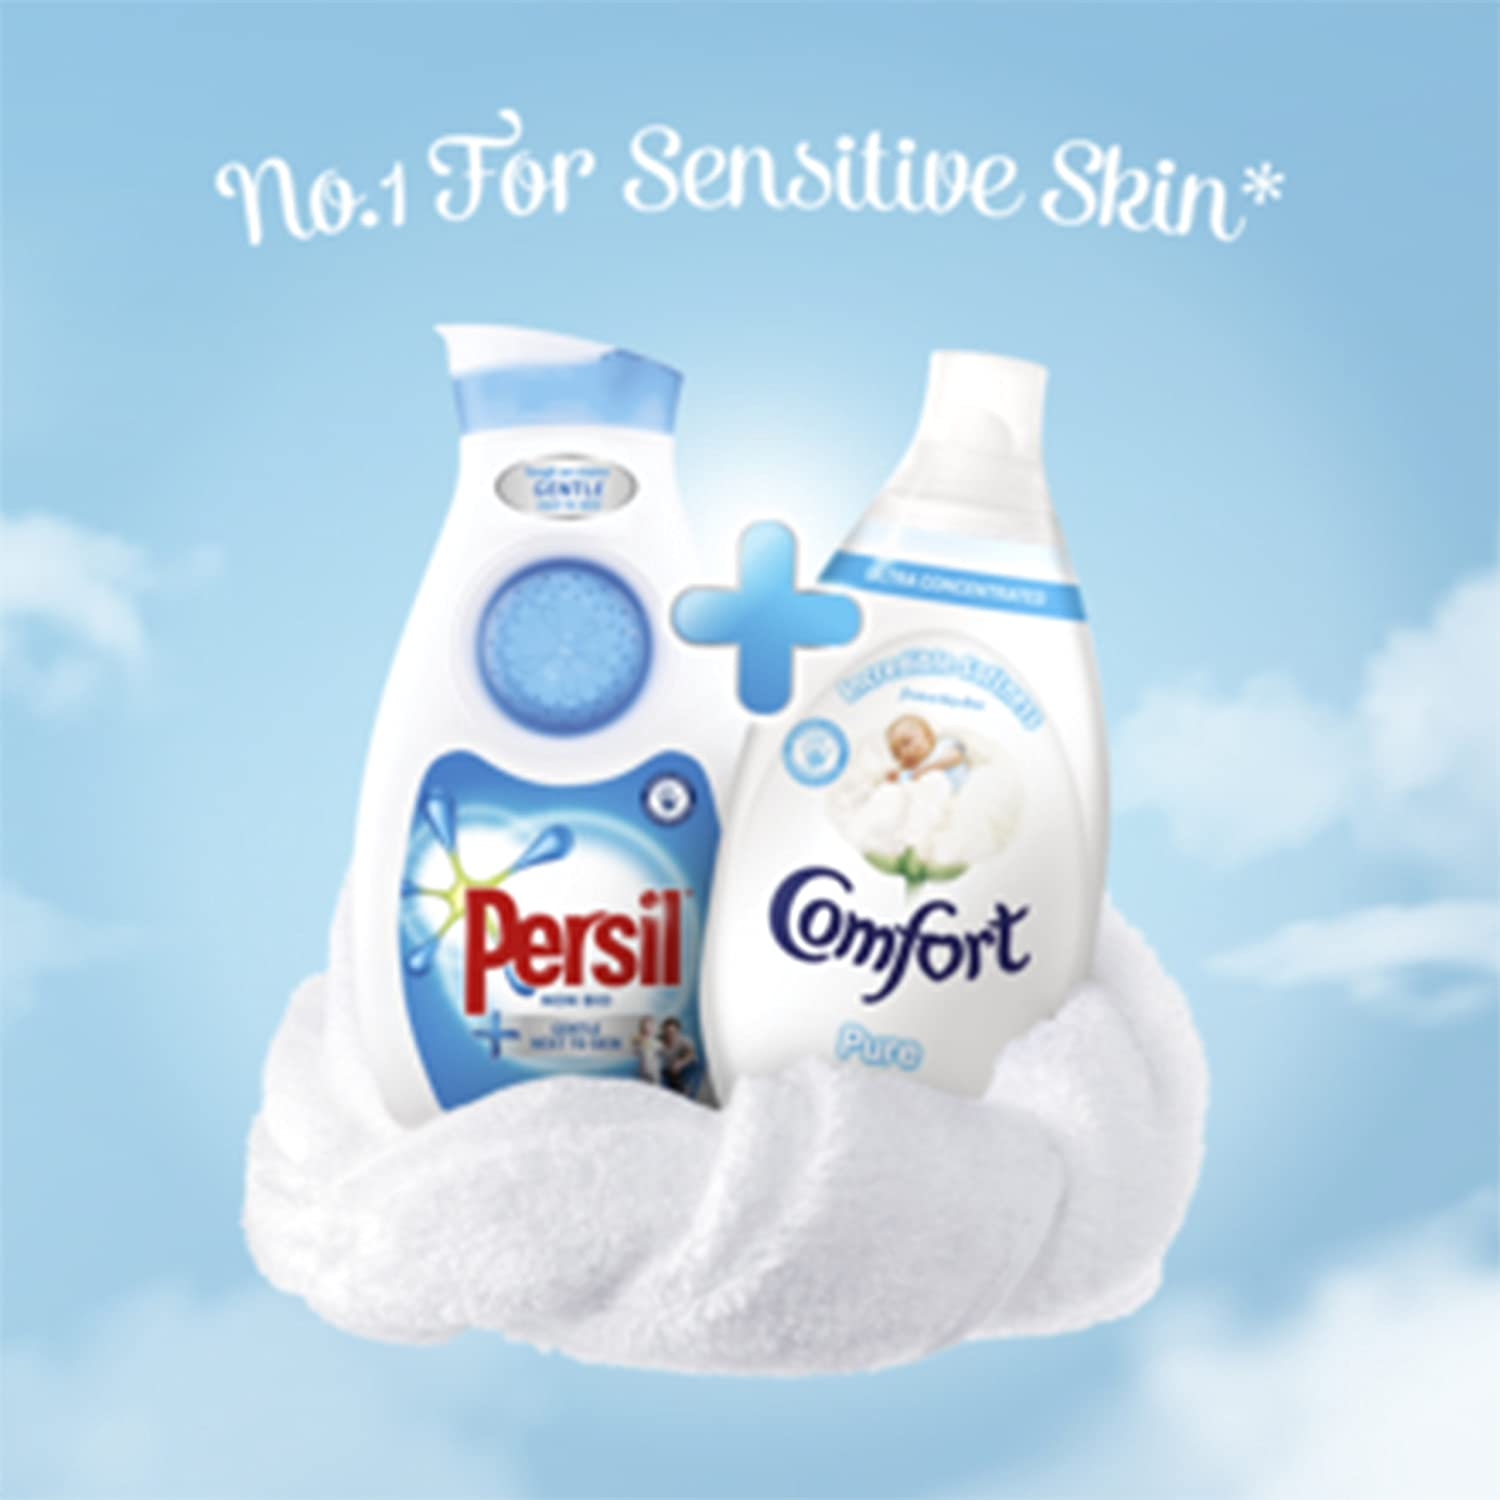 44cdd52a3 Persil and Comfort New Baby Essential Laundry Kit: Amazon.co.uk: Health &  Personal Care